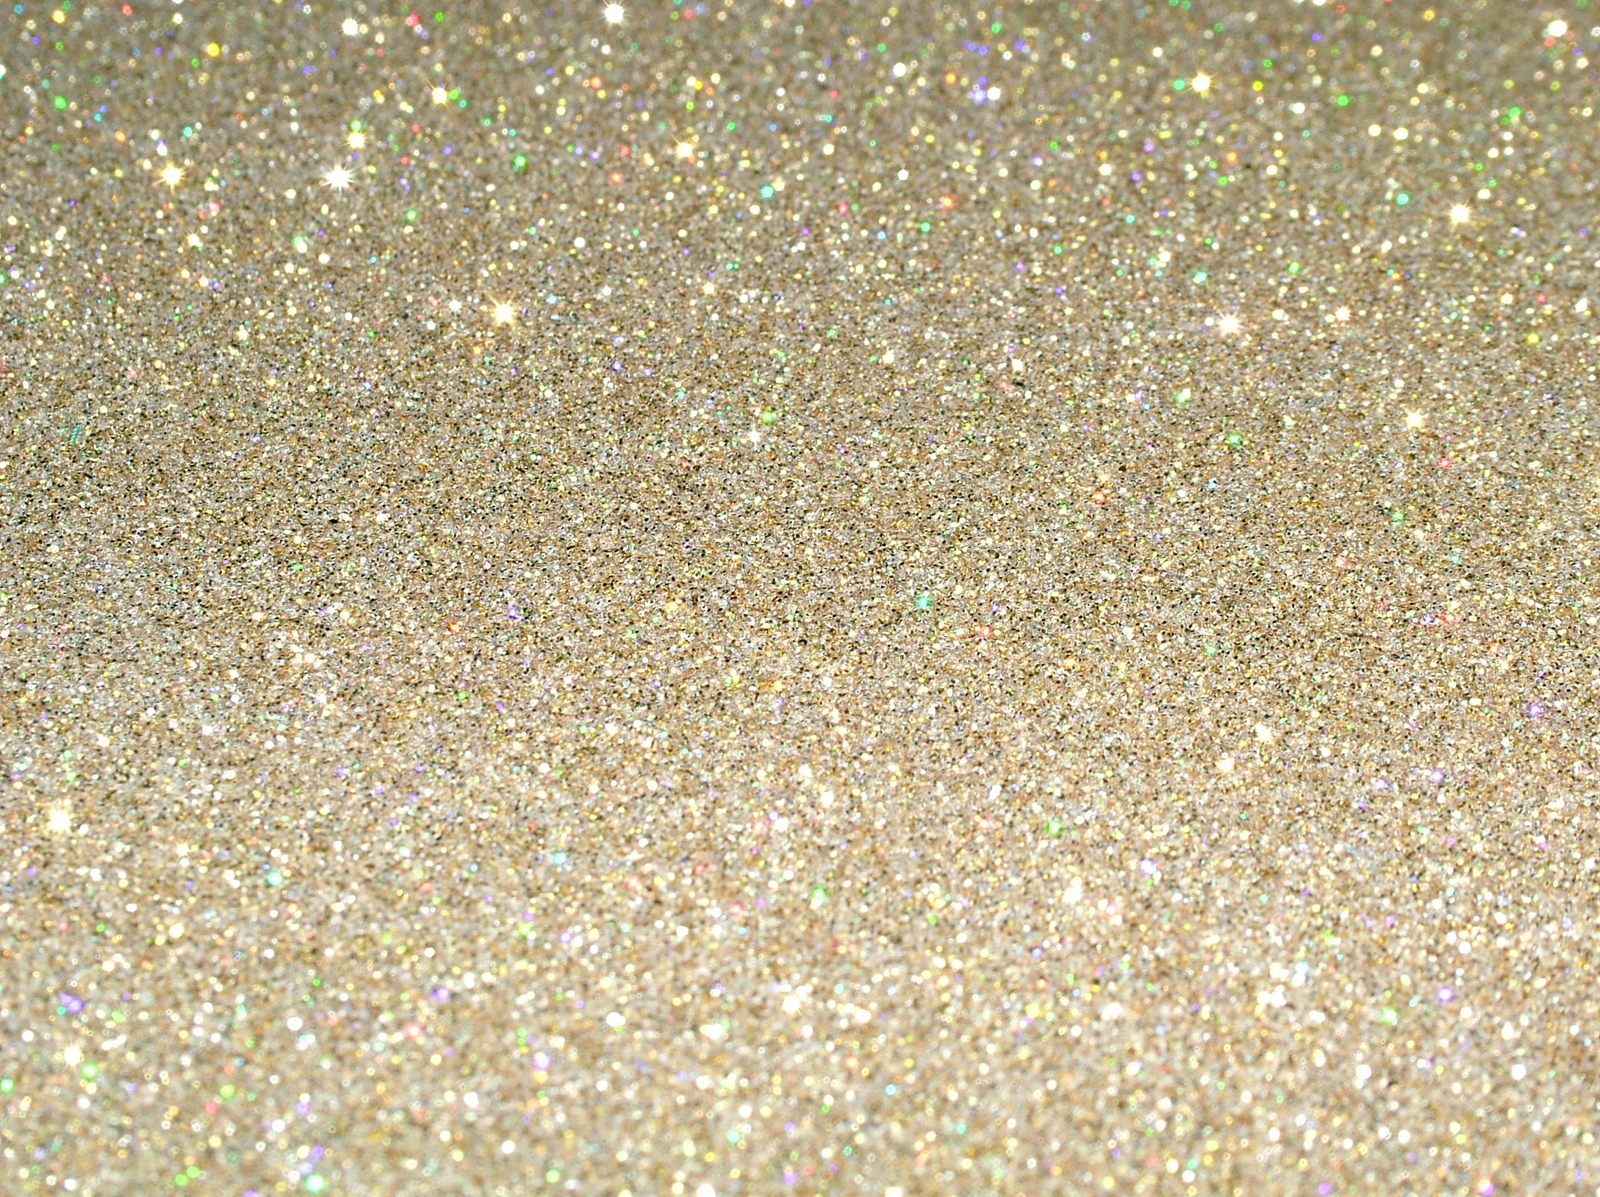 Cute Glitter Backgrounds Tumblr Images Pictures   Becuo 1600x1197